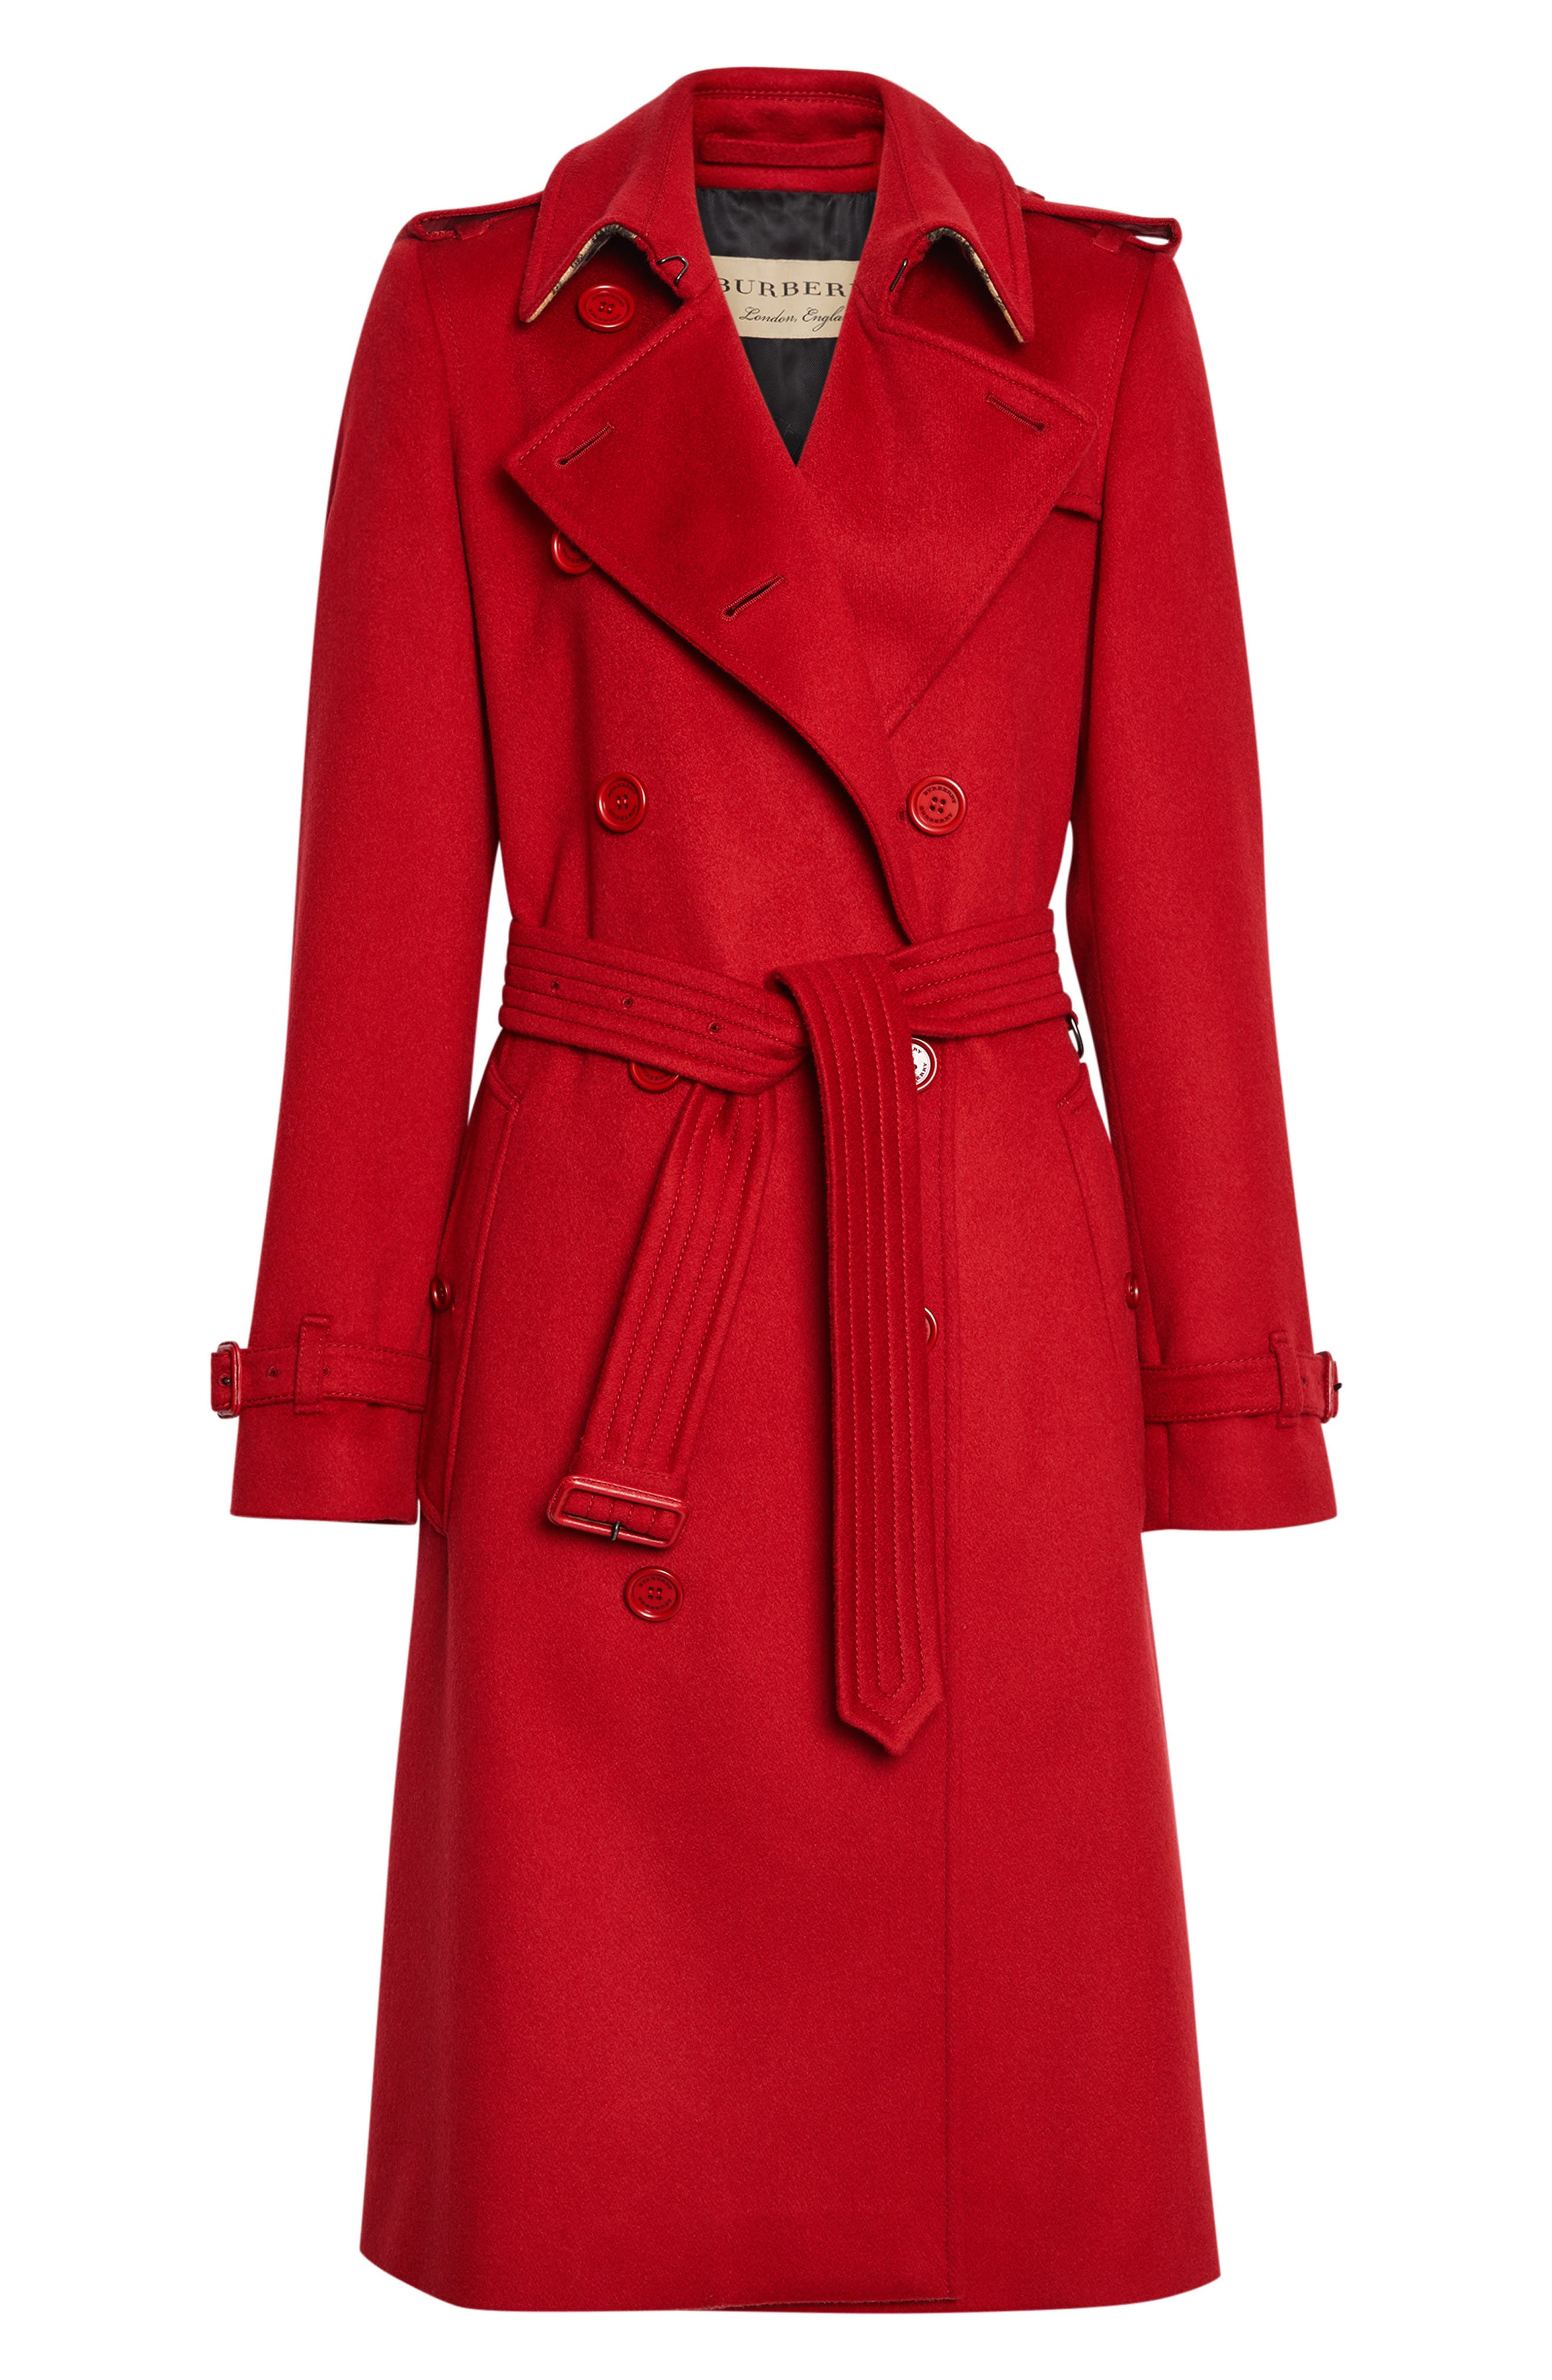 Kensington Cashmere Trench Coat,                             Alternate thumbnail 5, color,                             PARADE RED